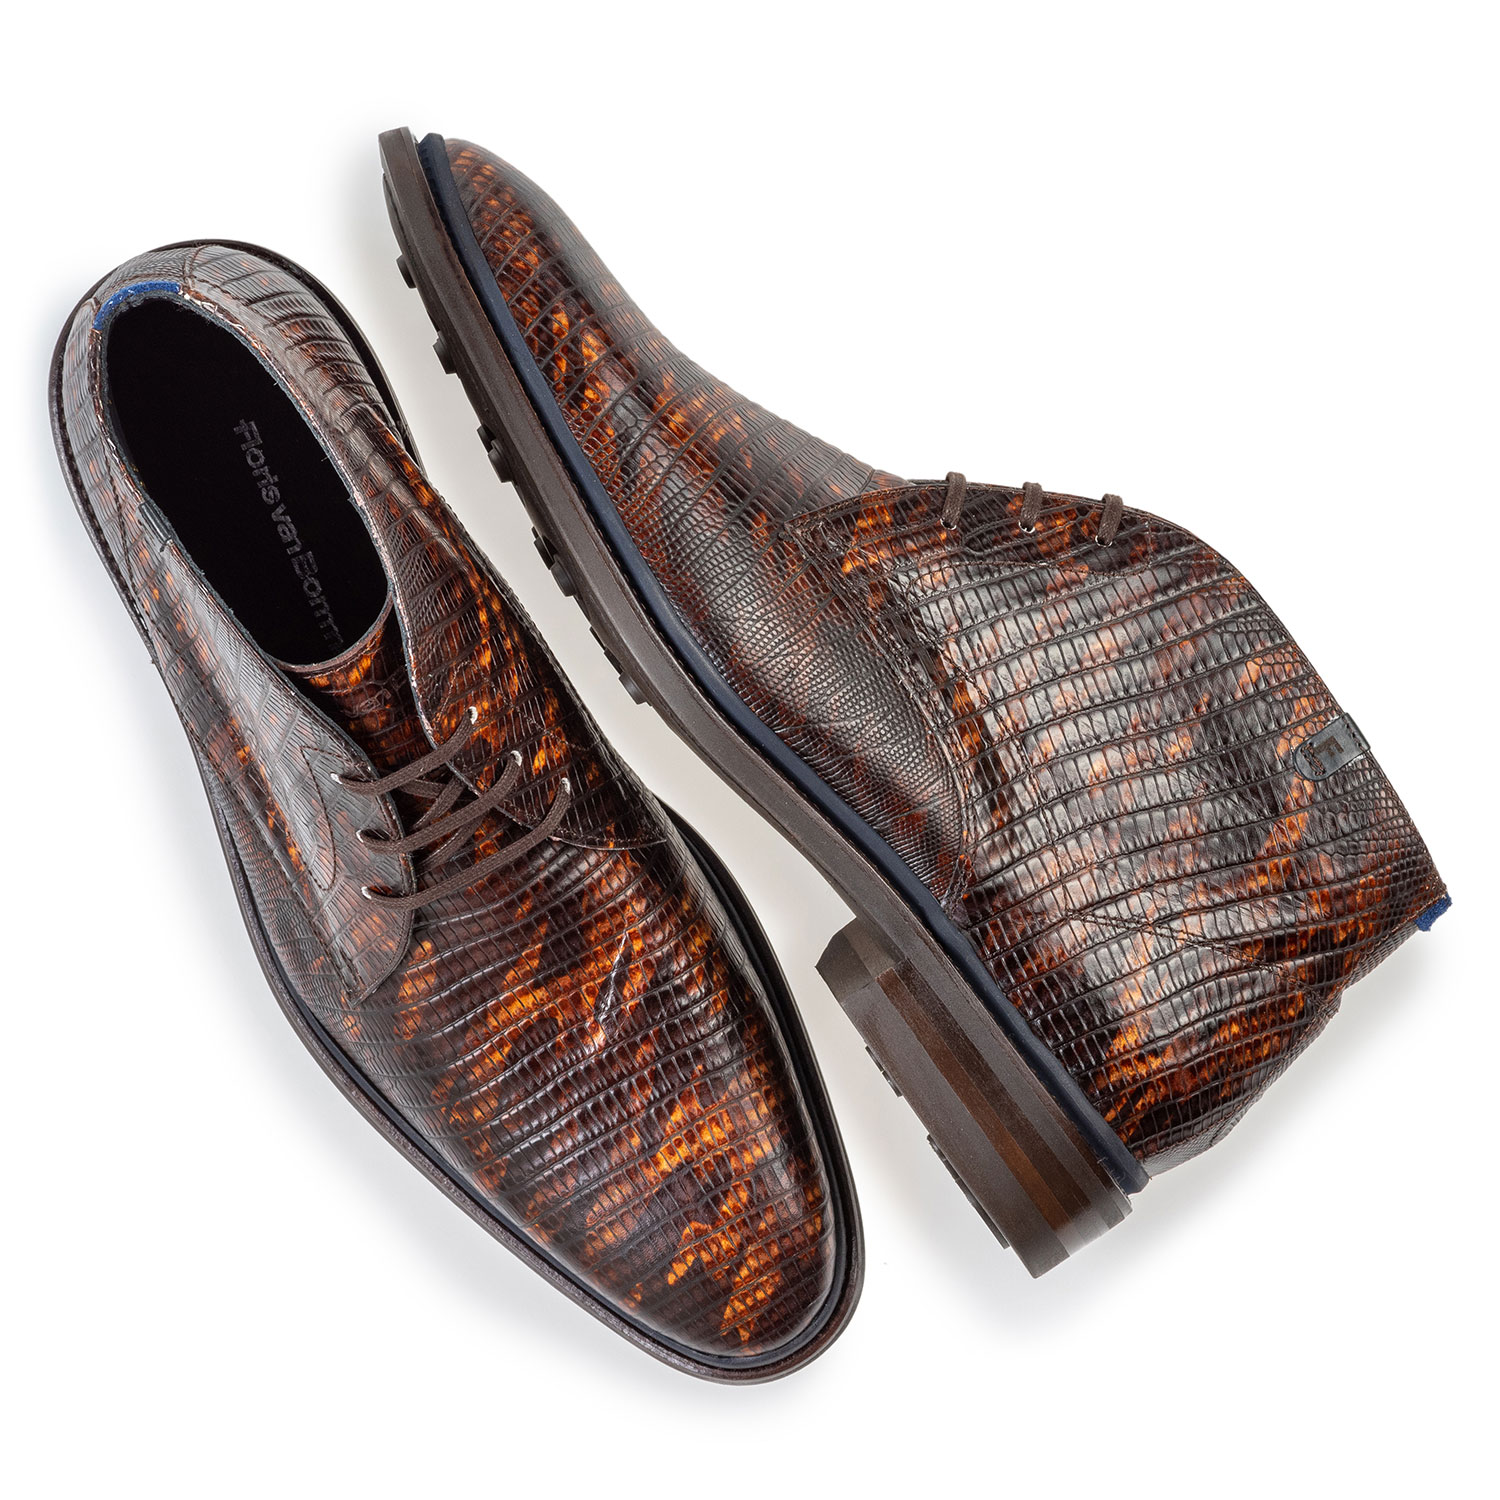 10667/08 - Lace boot lizard print cognac